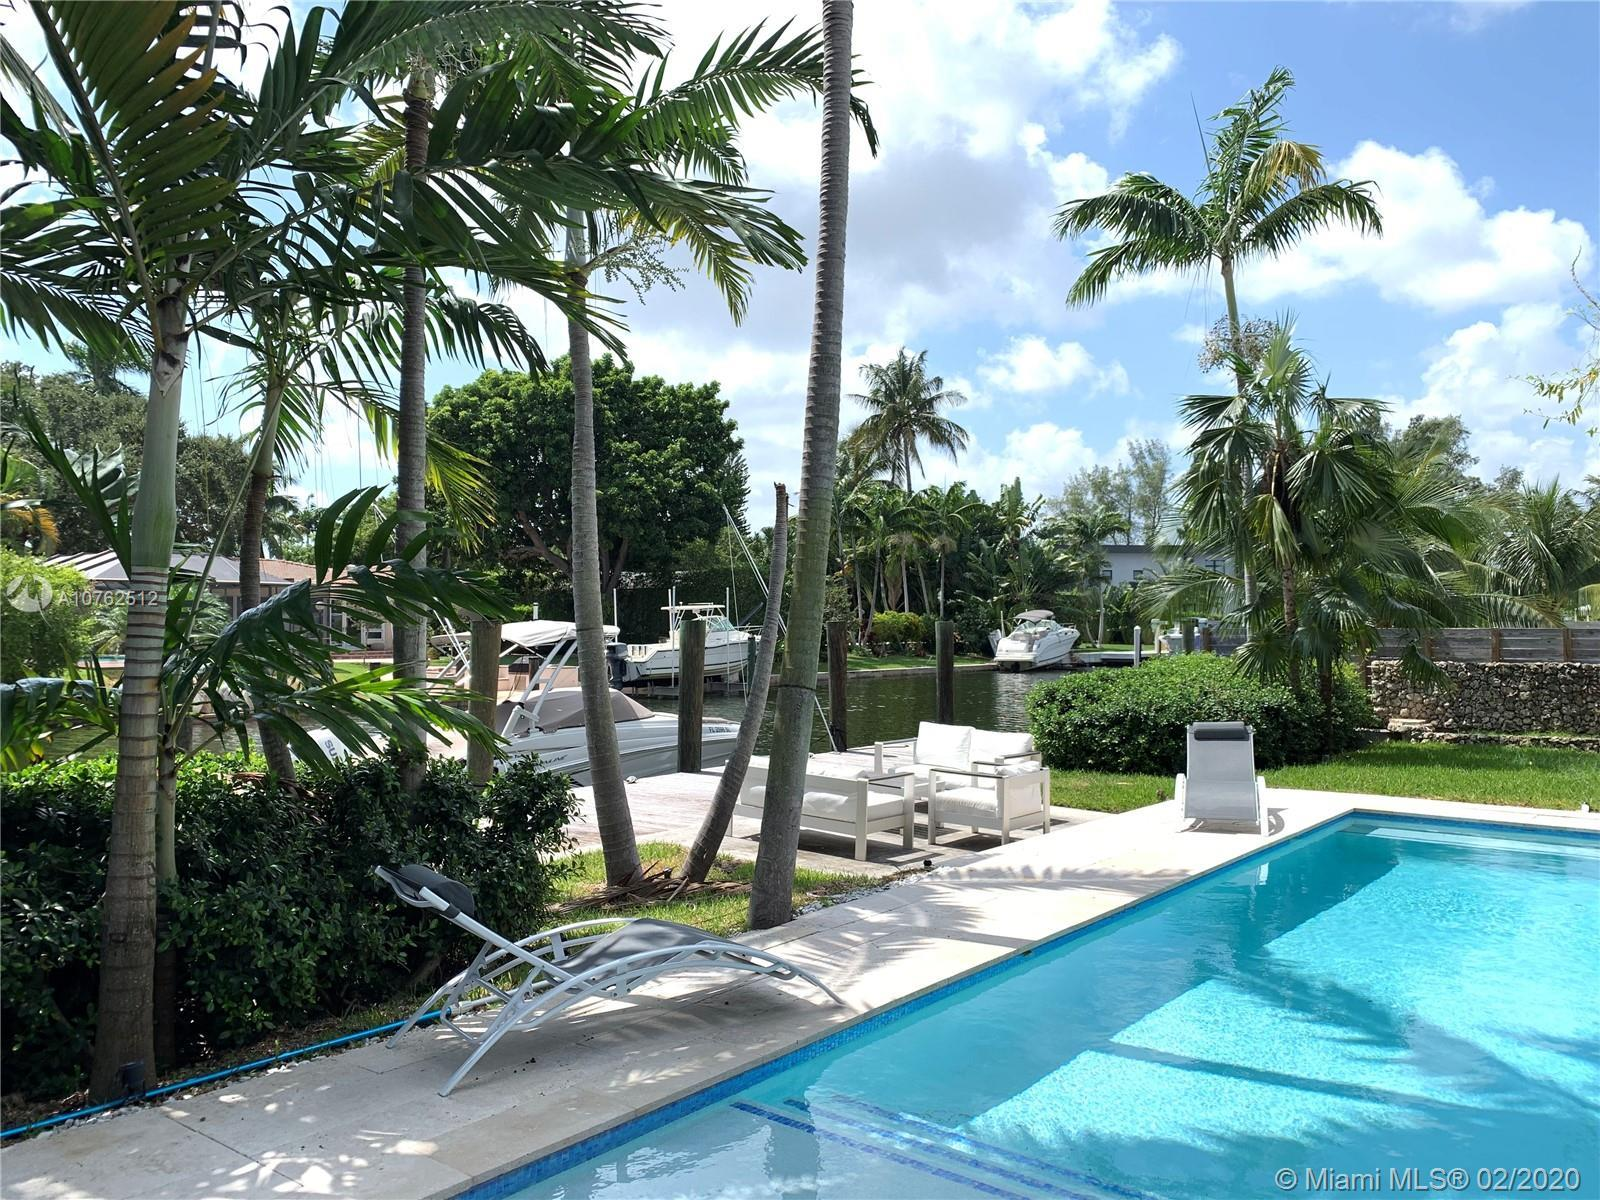 Beautifully renovated waterfront home, its spacious open interior is naturally lit.The modern house